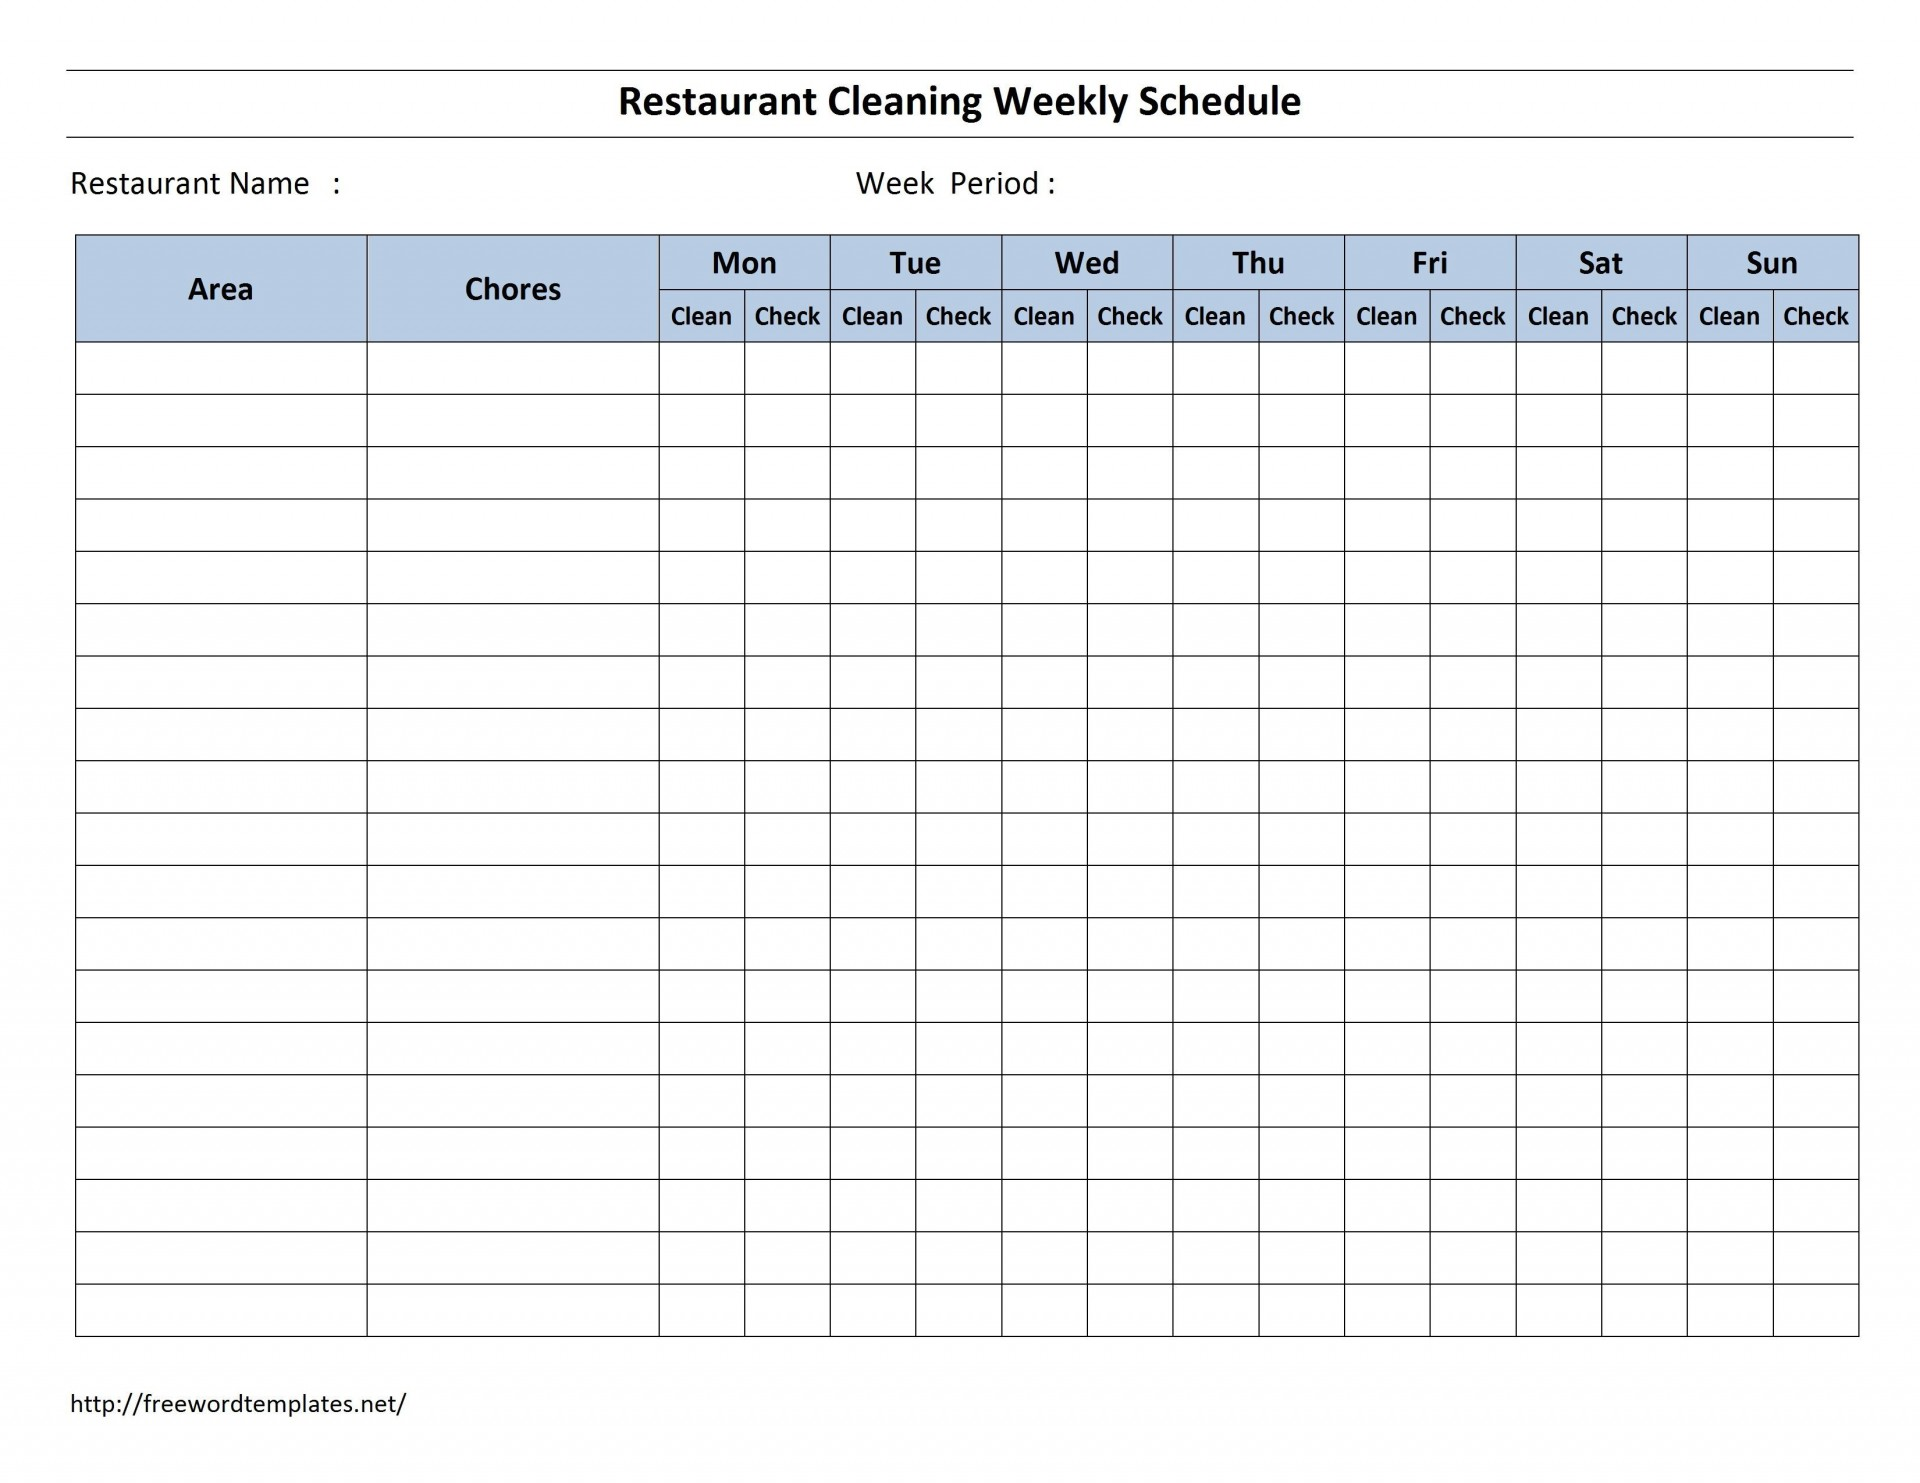 003 Fearsome Weekly Cleaning Schedule Form High Resolution  Template Restaurant Excel1920